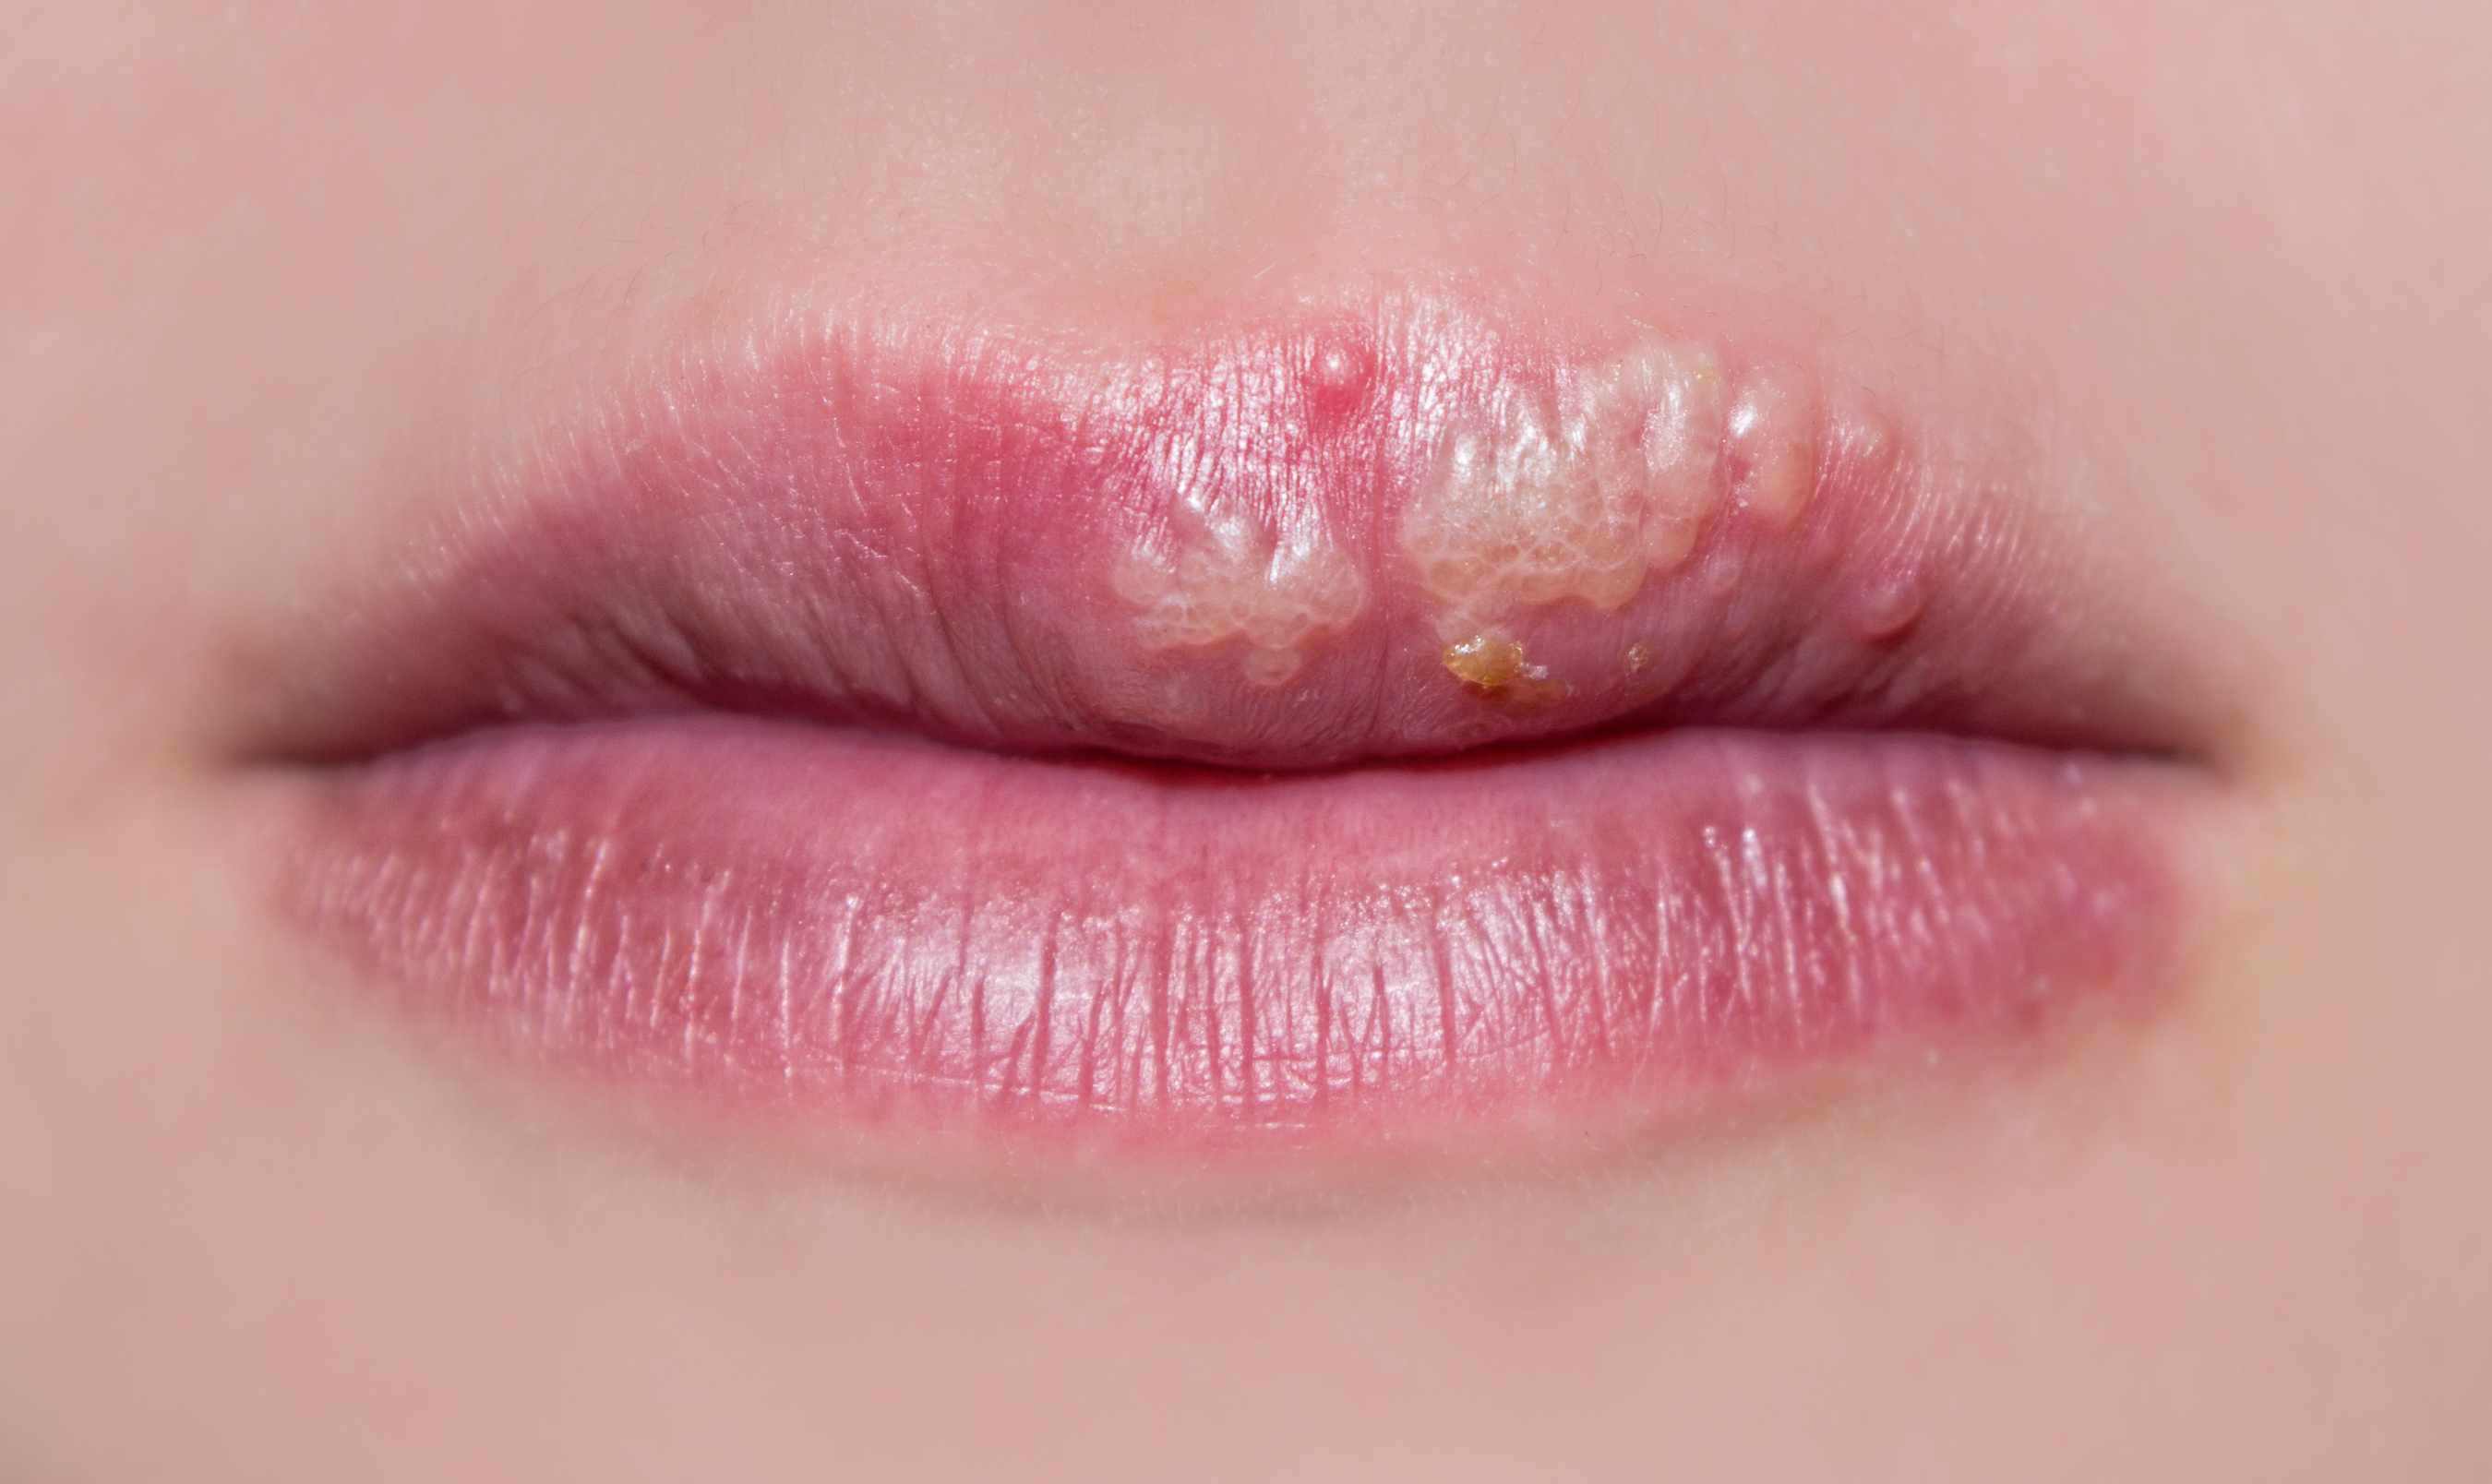 a close-up of a woman's lips with cold sores